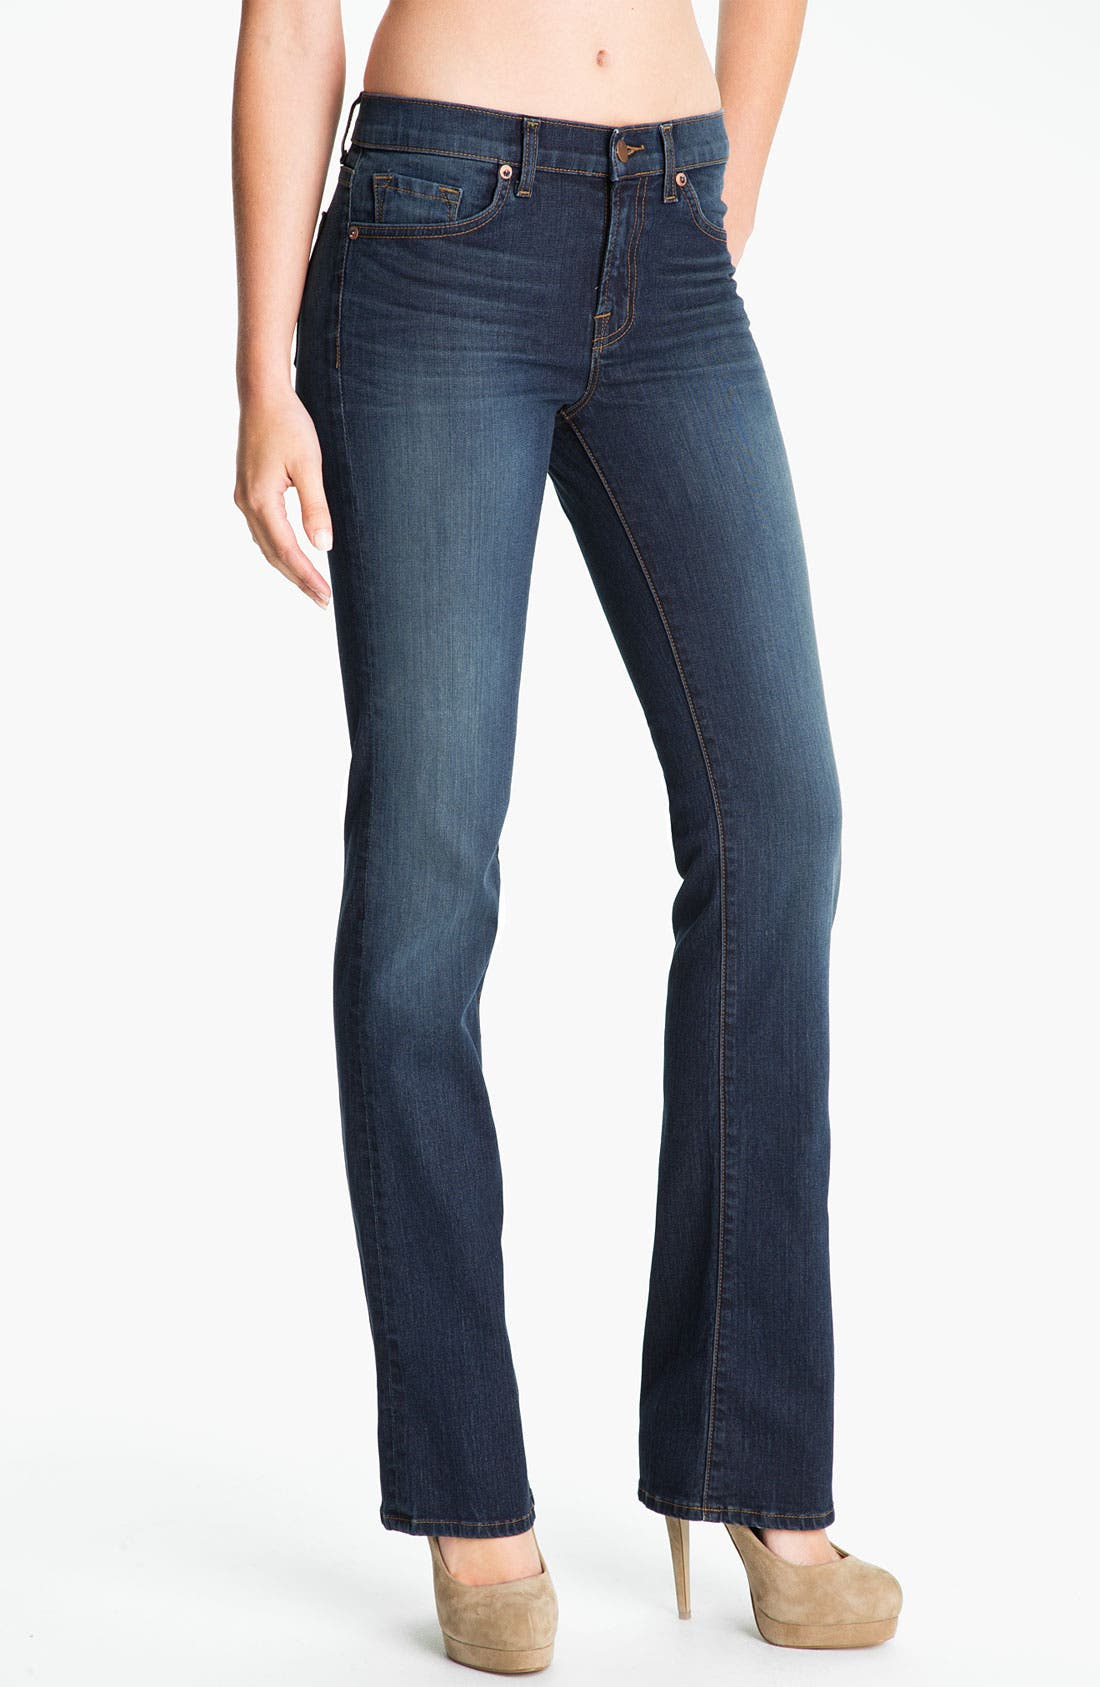 Main Image - J Brand Slim Bootcut Stretch Jeans (Classic Wash)